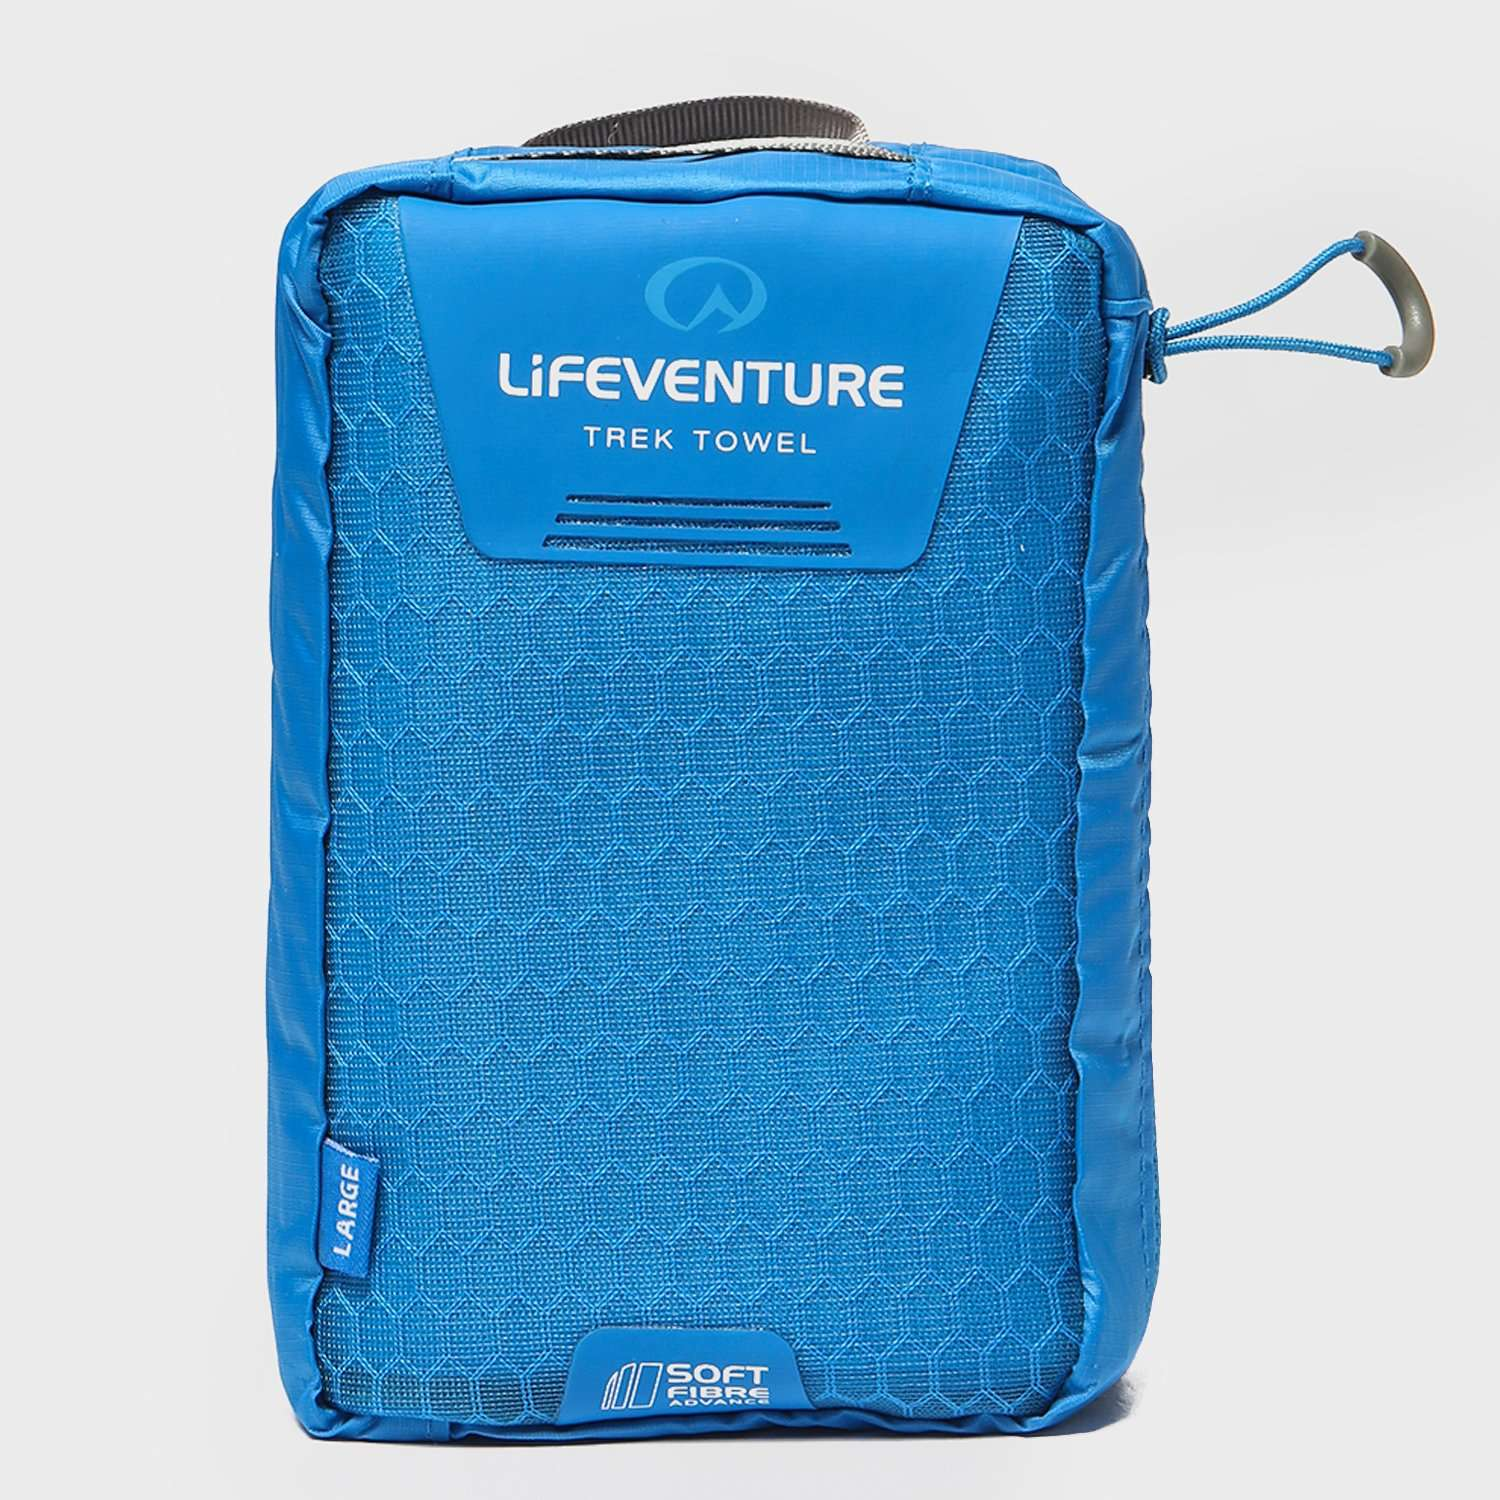 LIFEVENTURE SoftFibre Blue Travel Towel (Large)